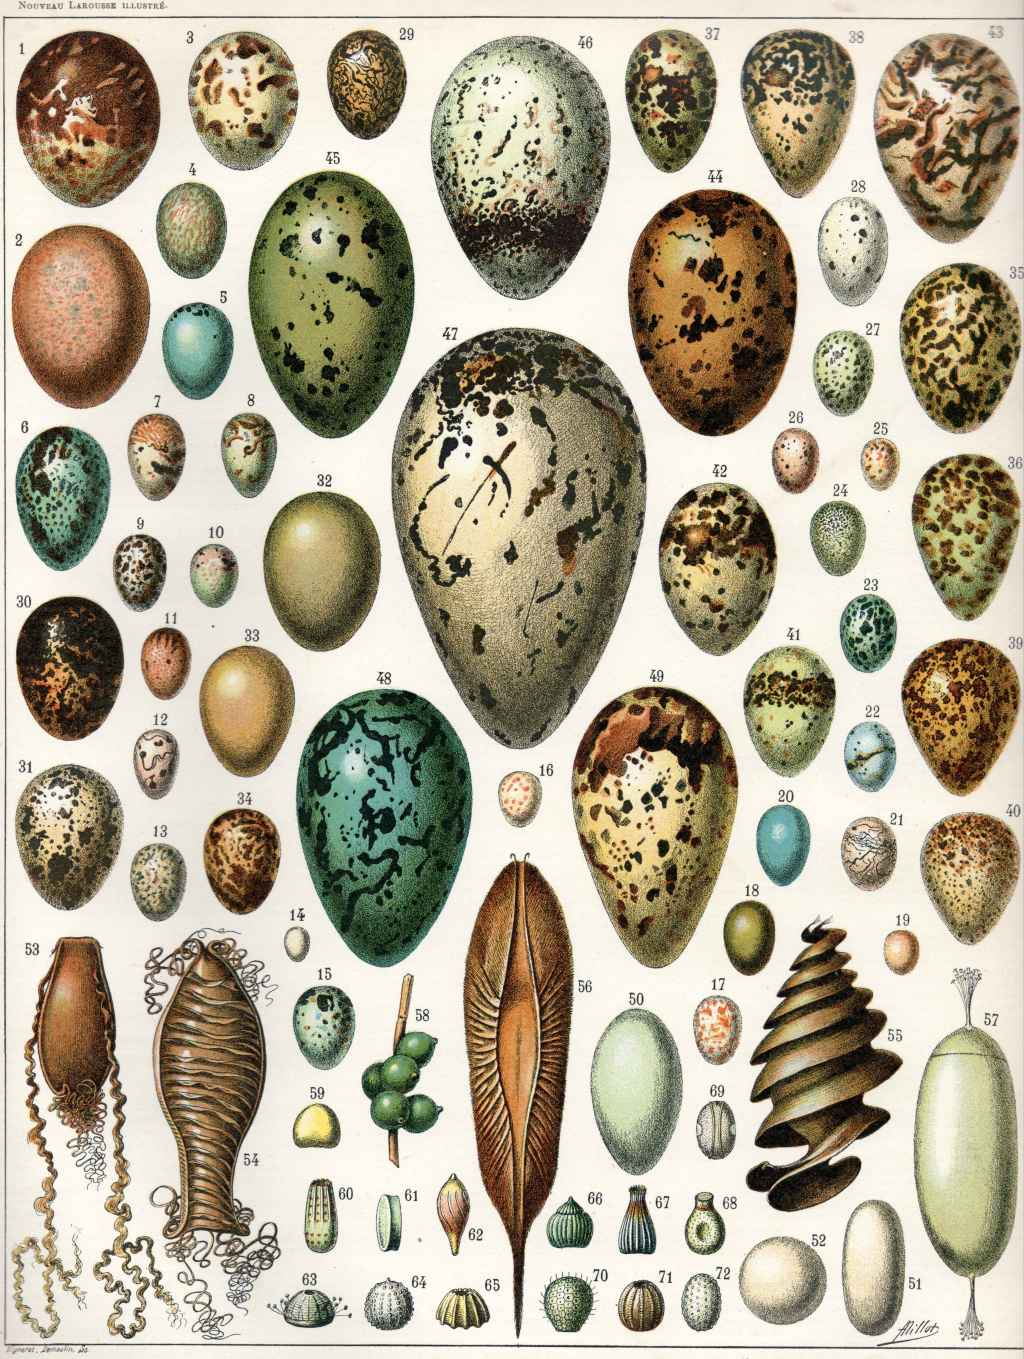 Illustration of Eggs and Shells by Adolphe Millot